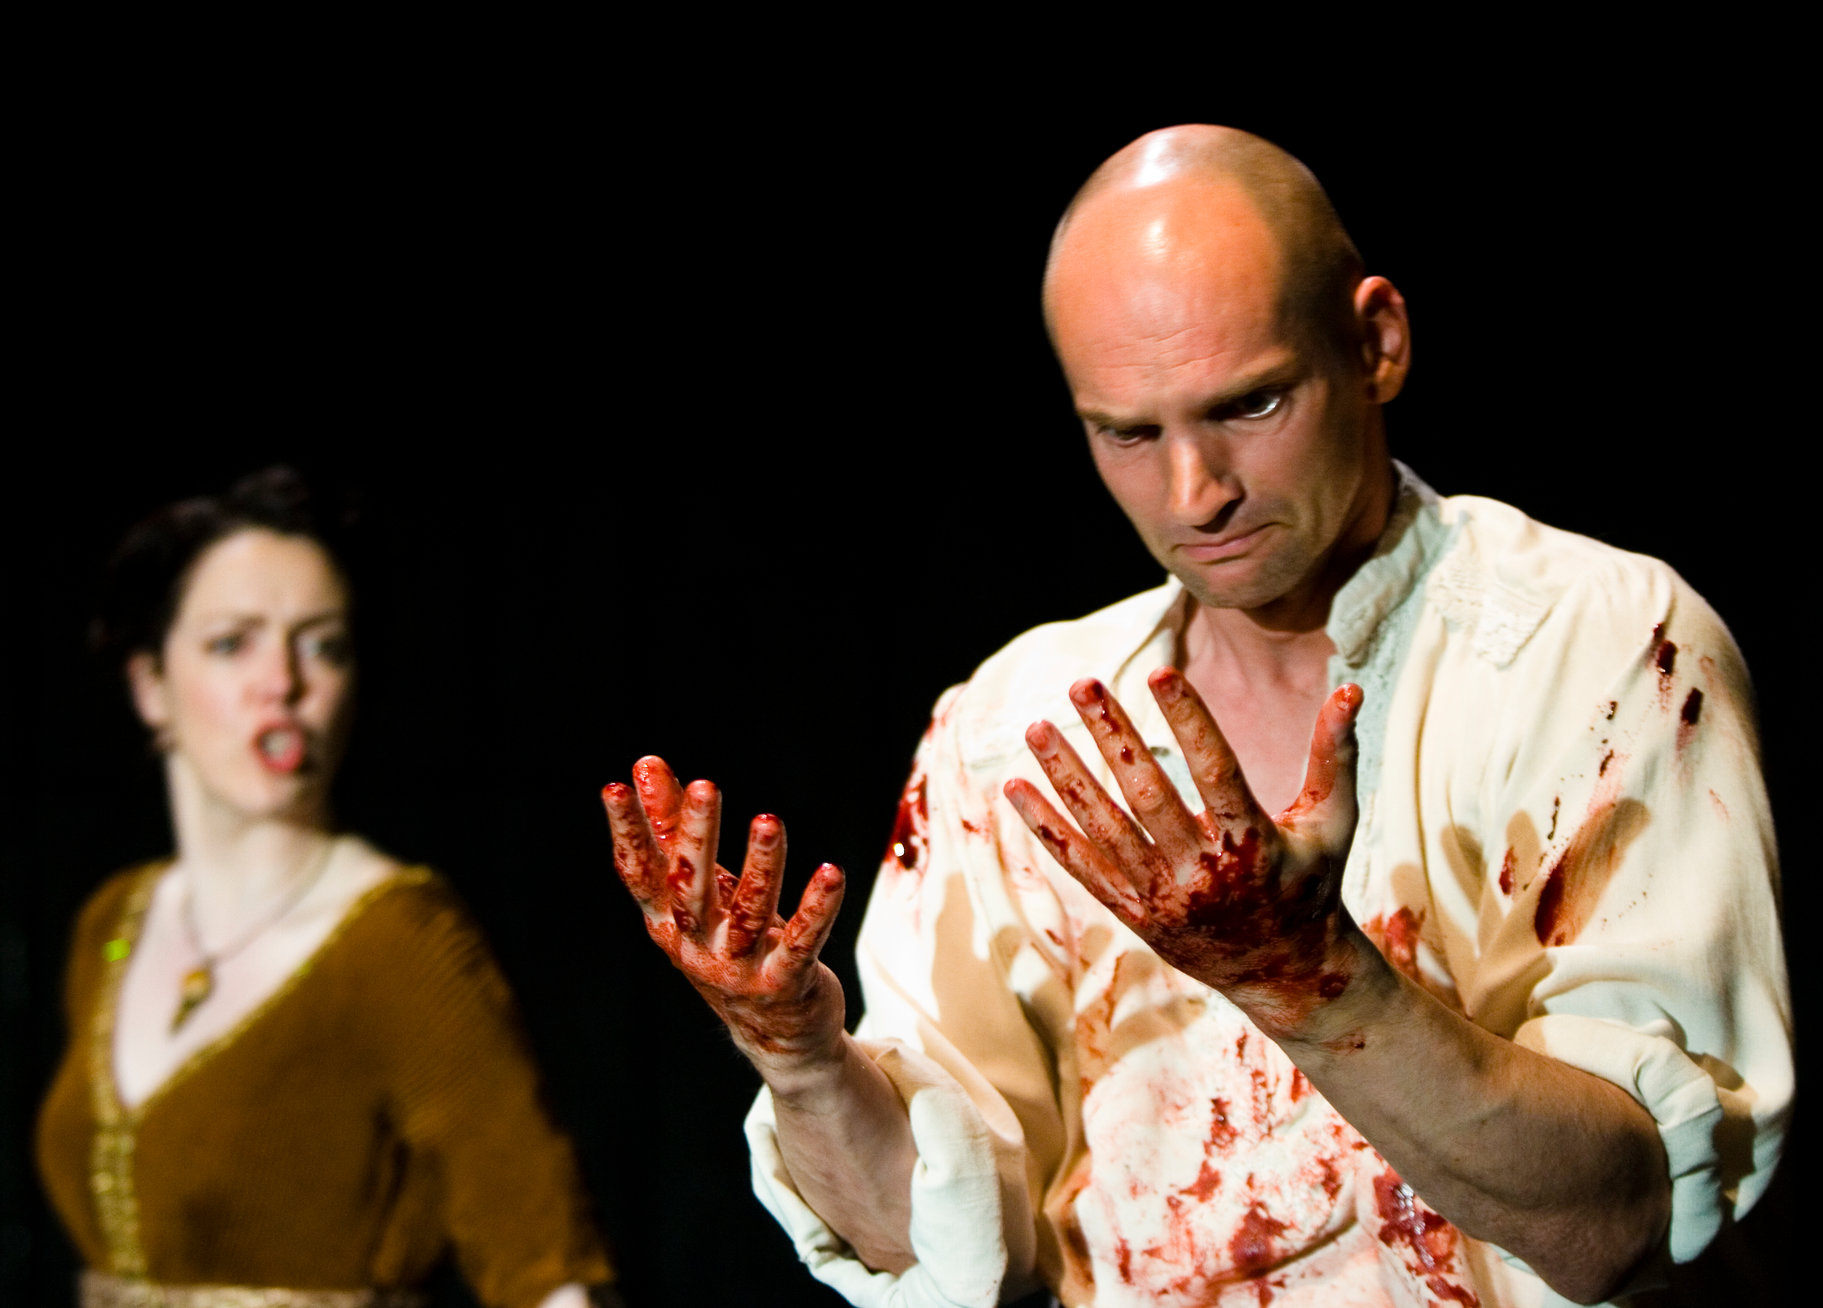 Macbeth looks at his bloody hands.